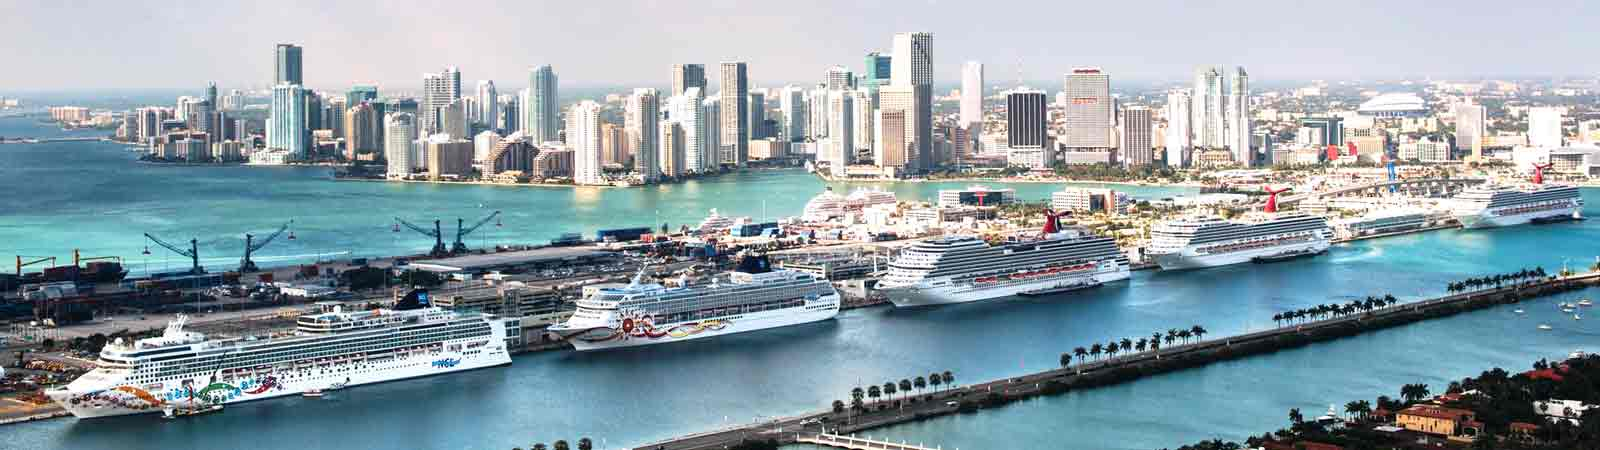 Overview Miami Cruise Port Review And Travel Guide IQCruising - Cruise ship port in miami